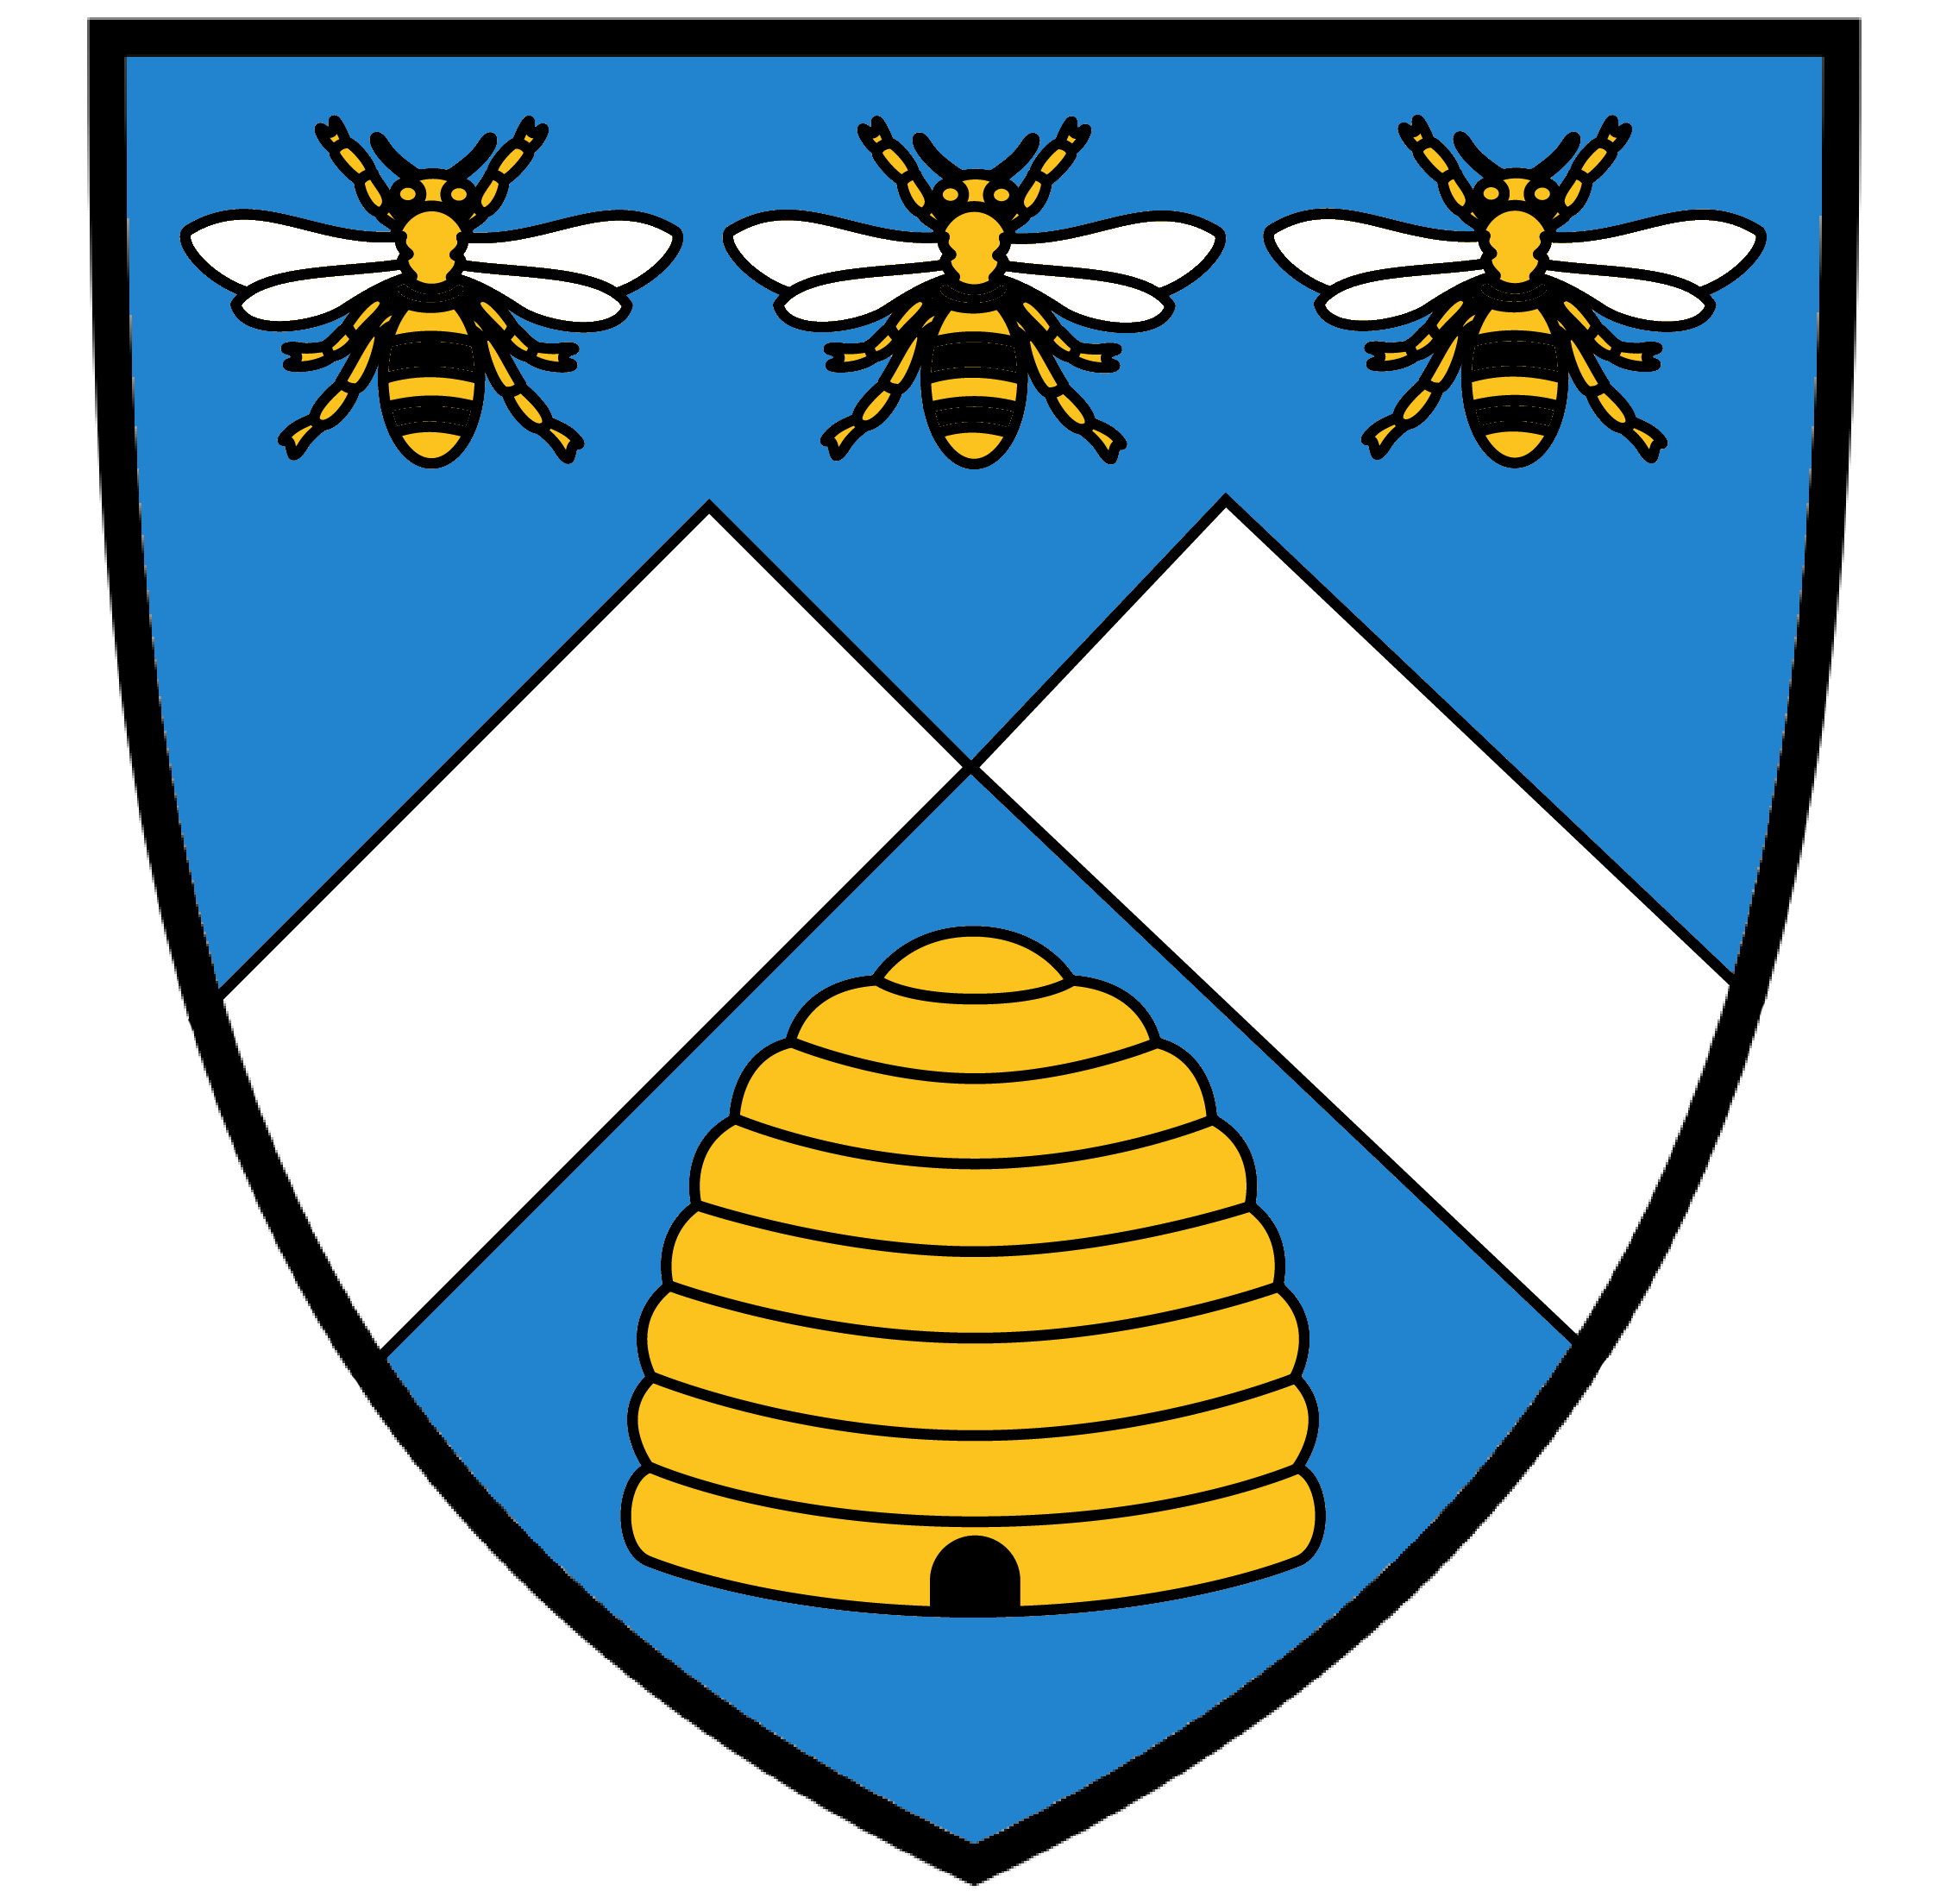 vector freeuse stock Beehive clipart deseret. Personal assumed arms azure.